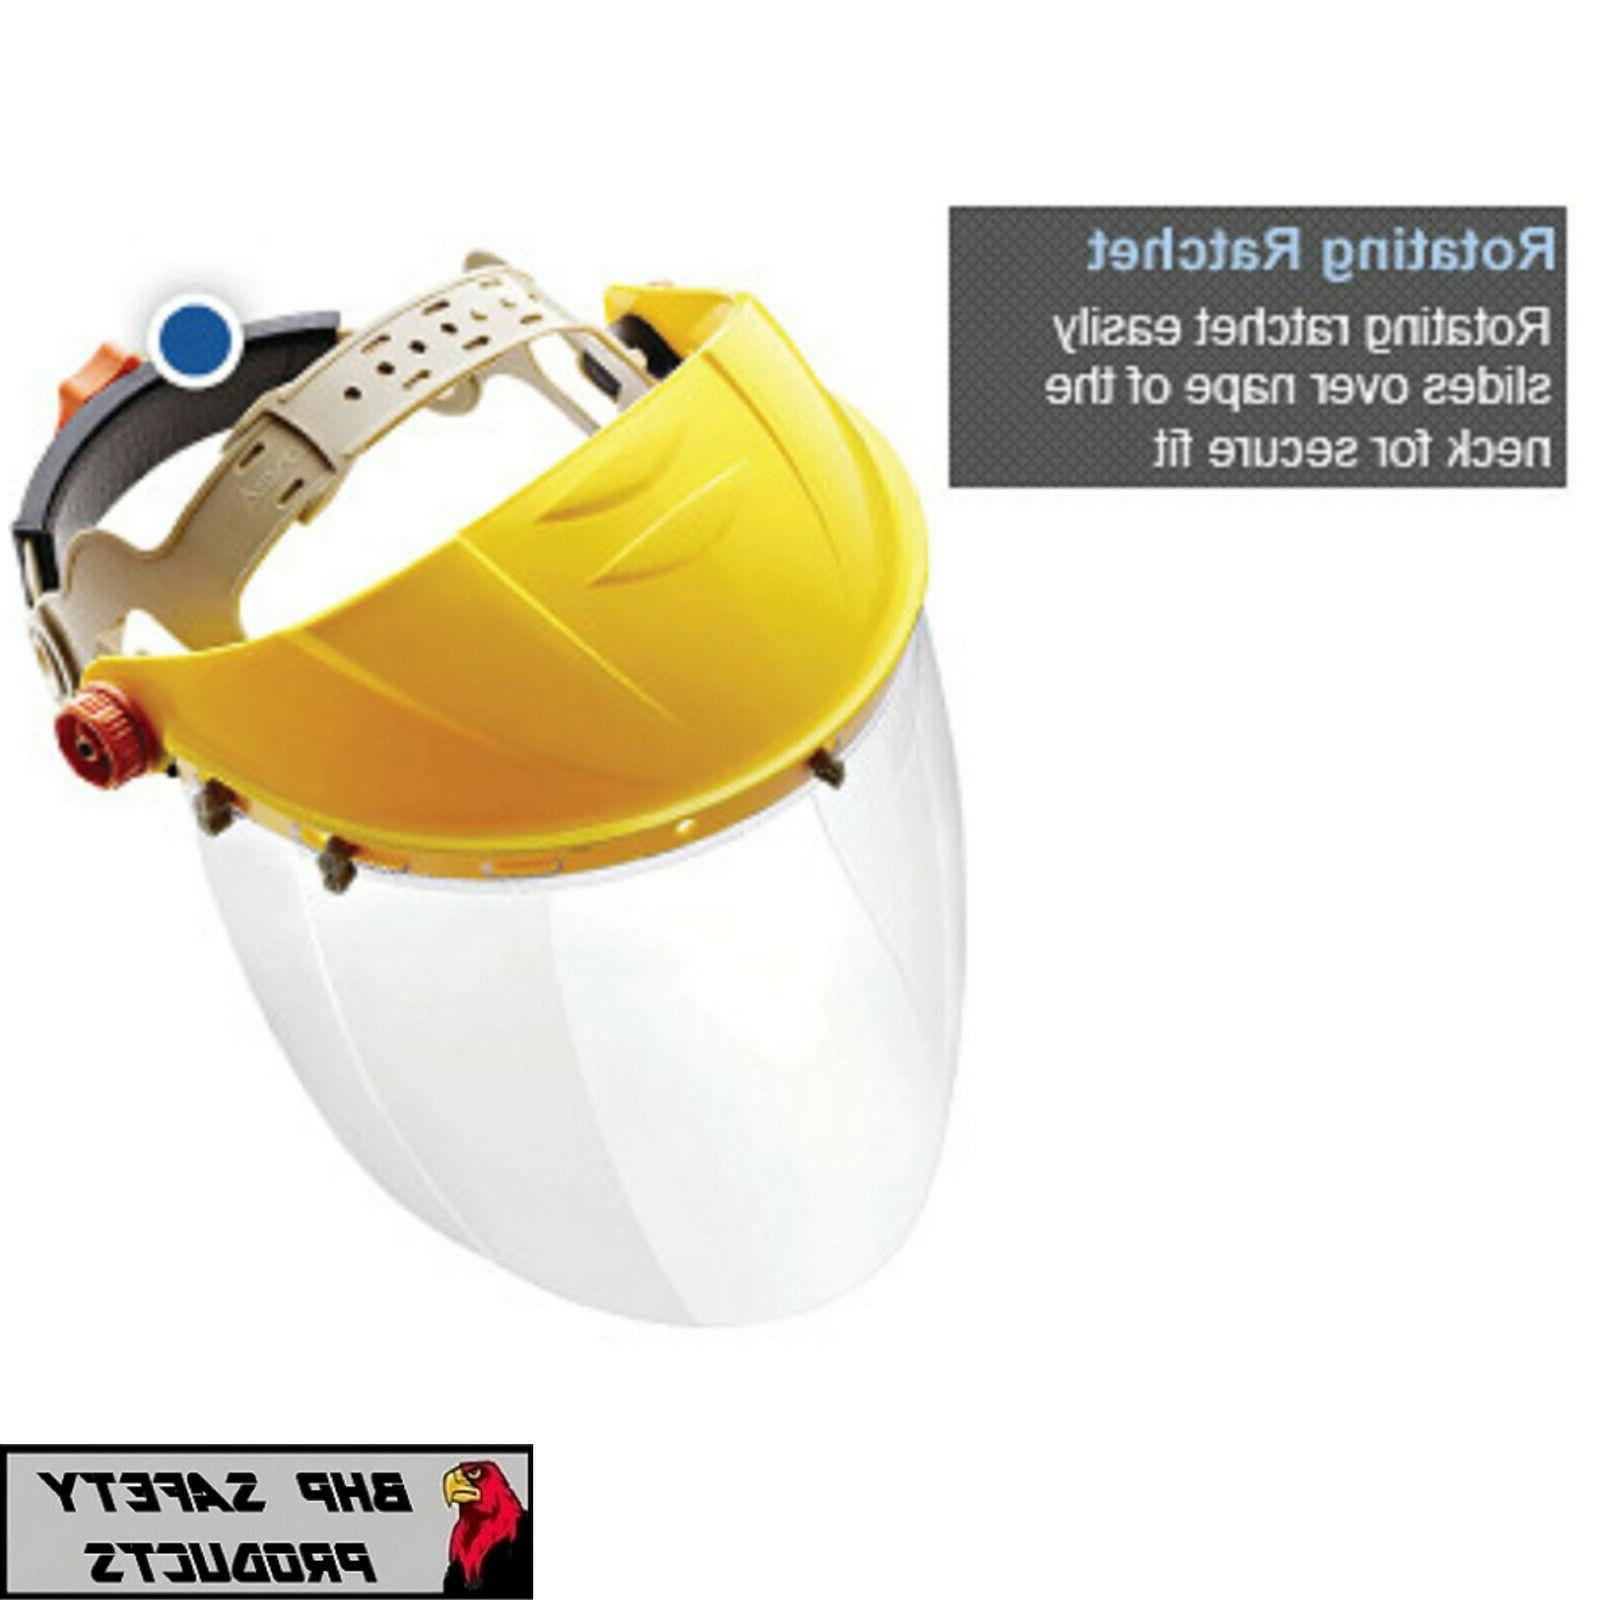 Full Safety Shield Tool Mask Clear Painting Protection Grinding